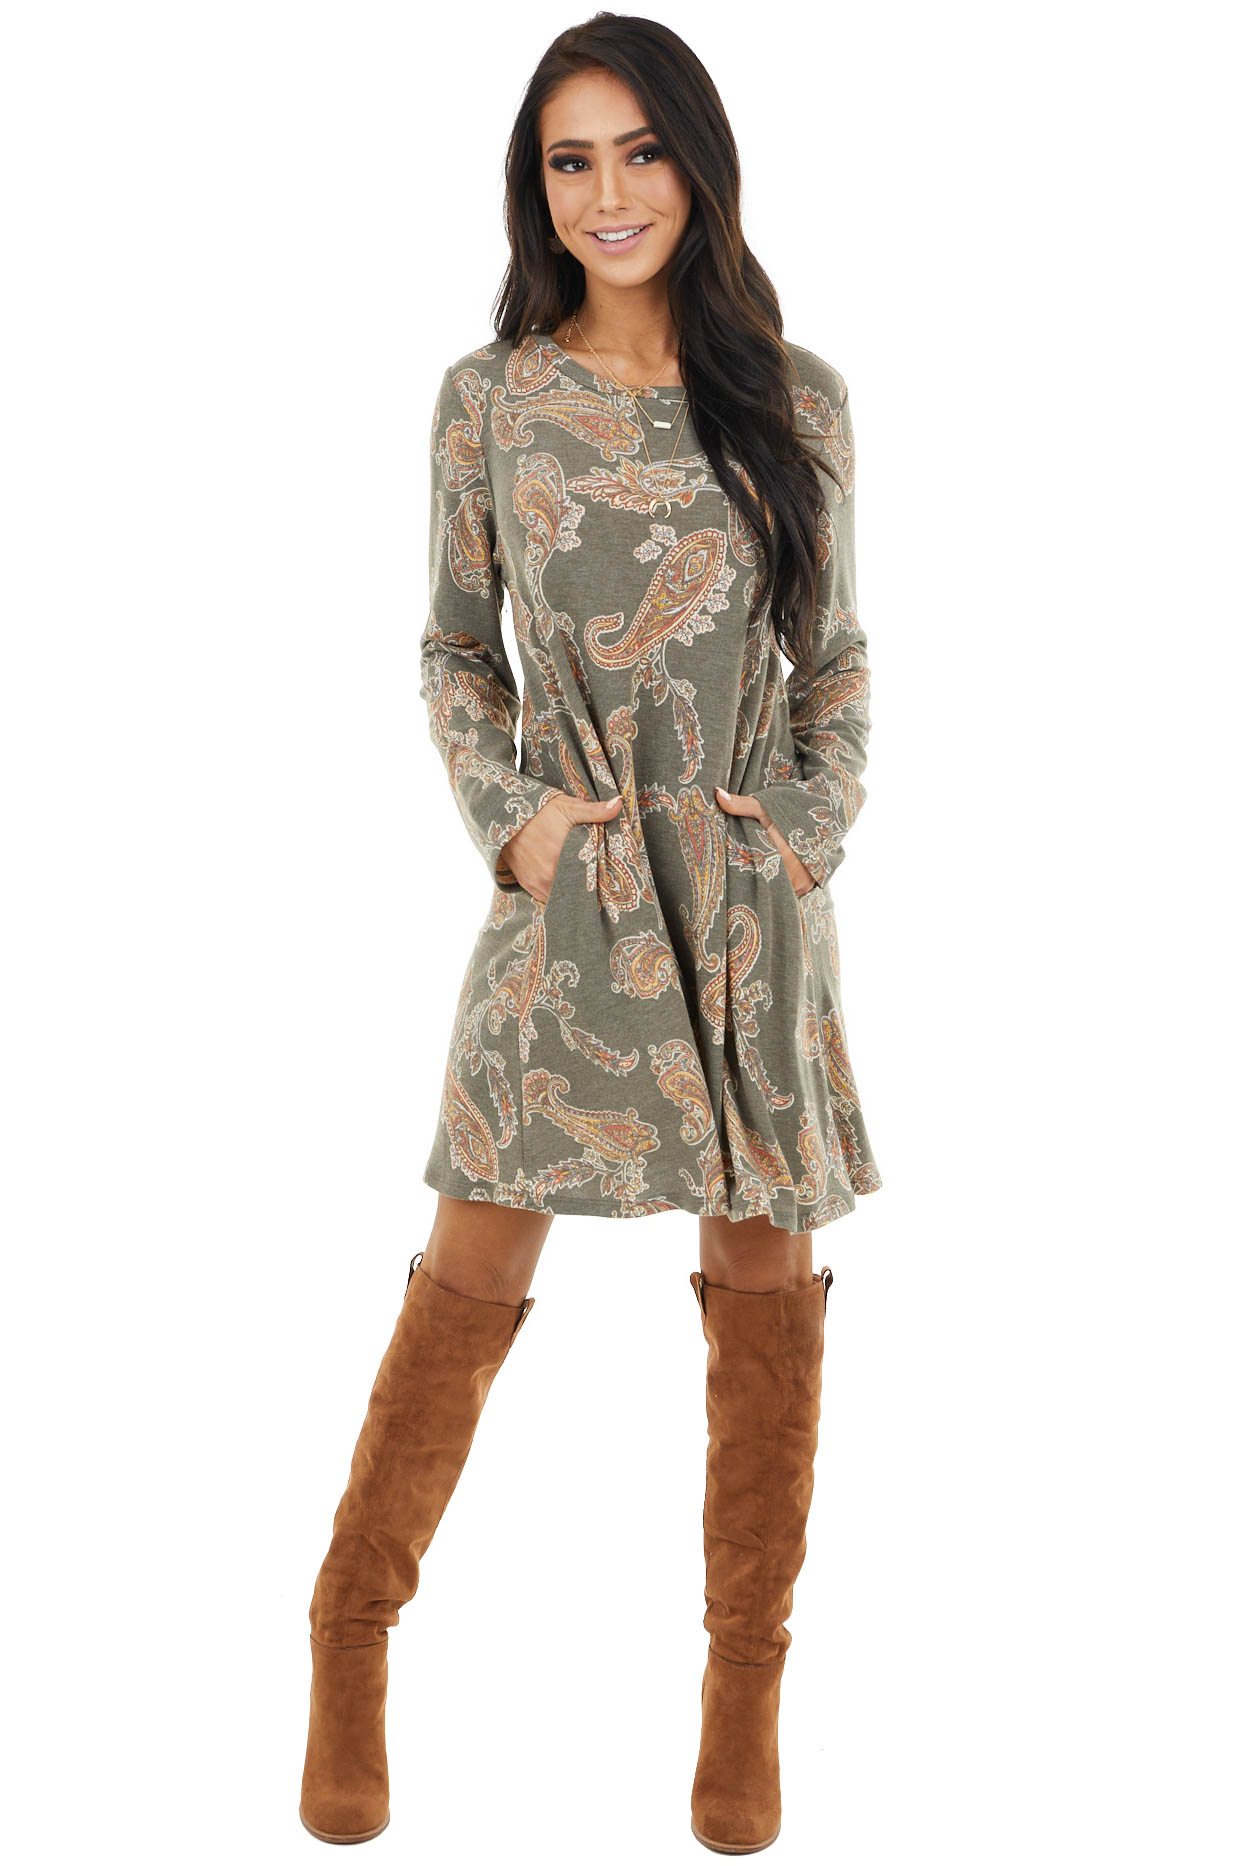 Olive Paisley Print Long Sleeve Swing Dress with Pockets